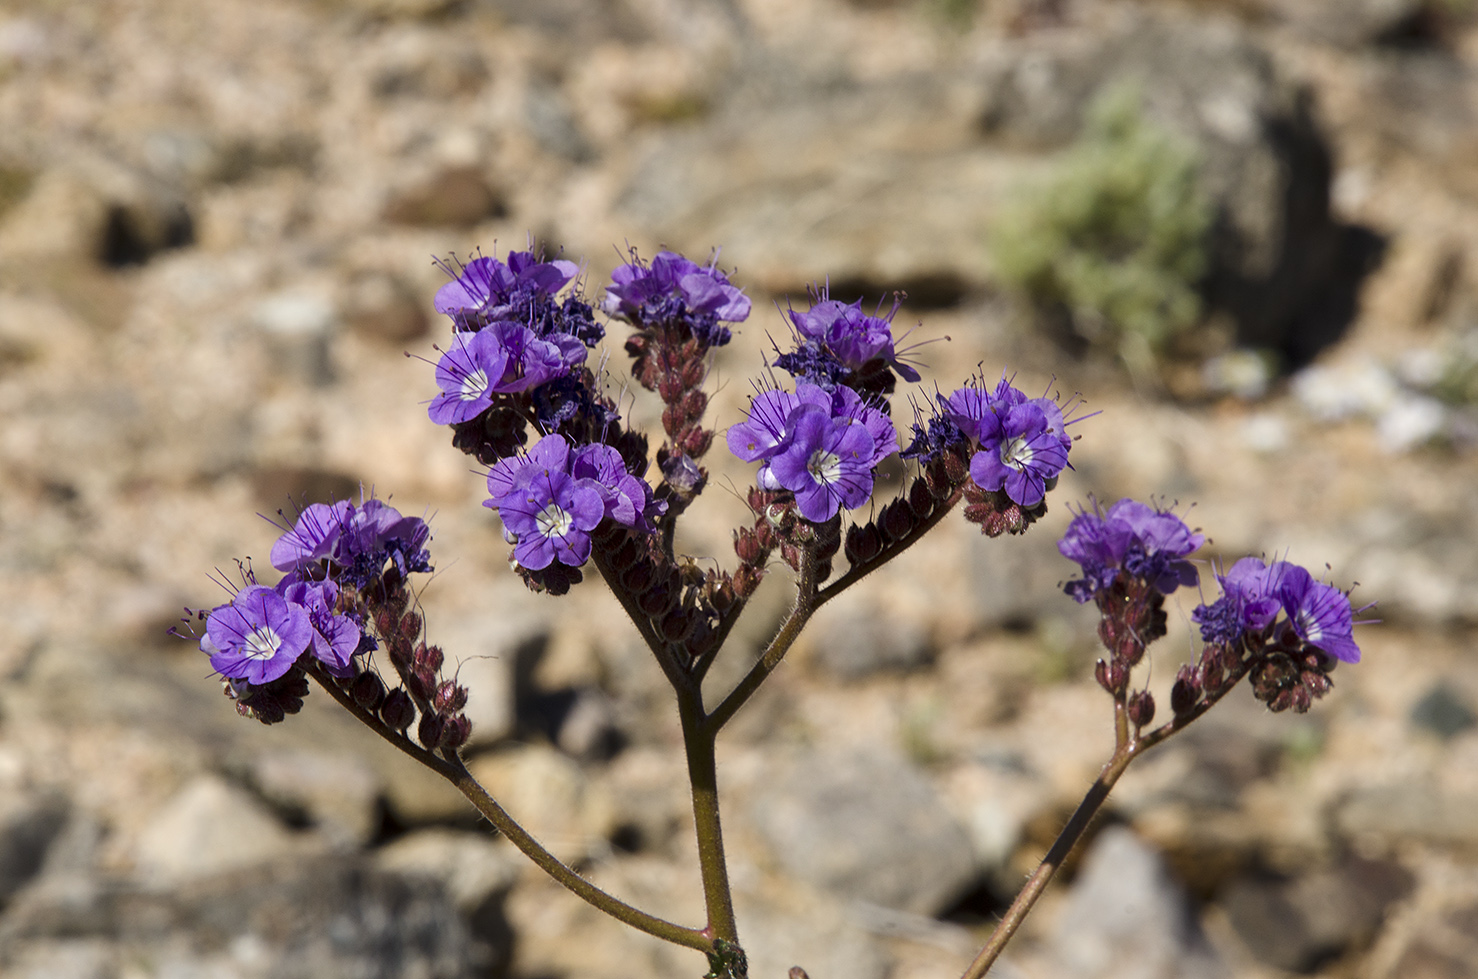 Joshua Tree National Park Wildflowers 19.jpg